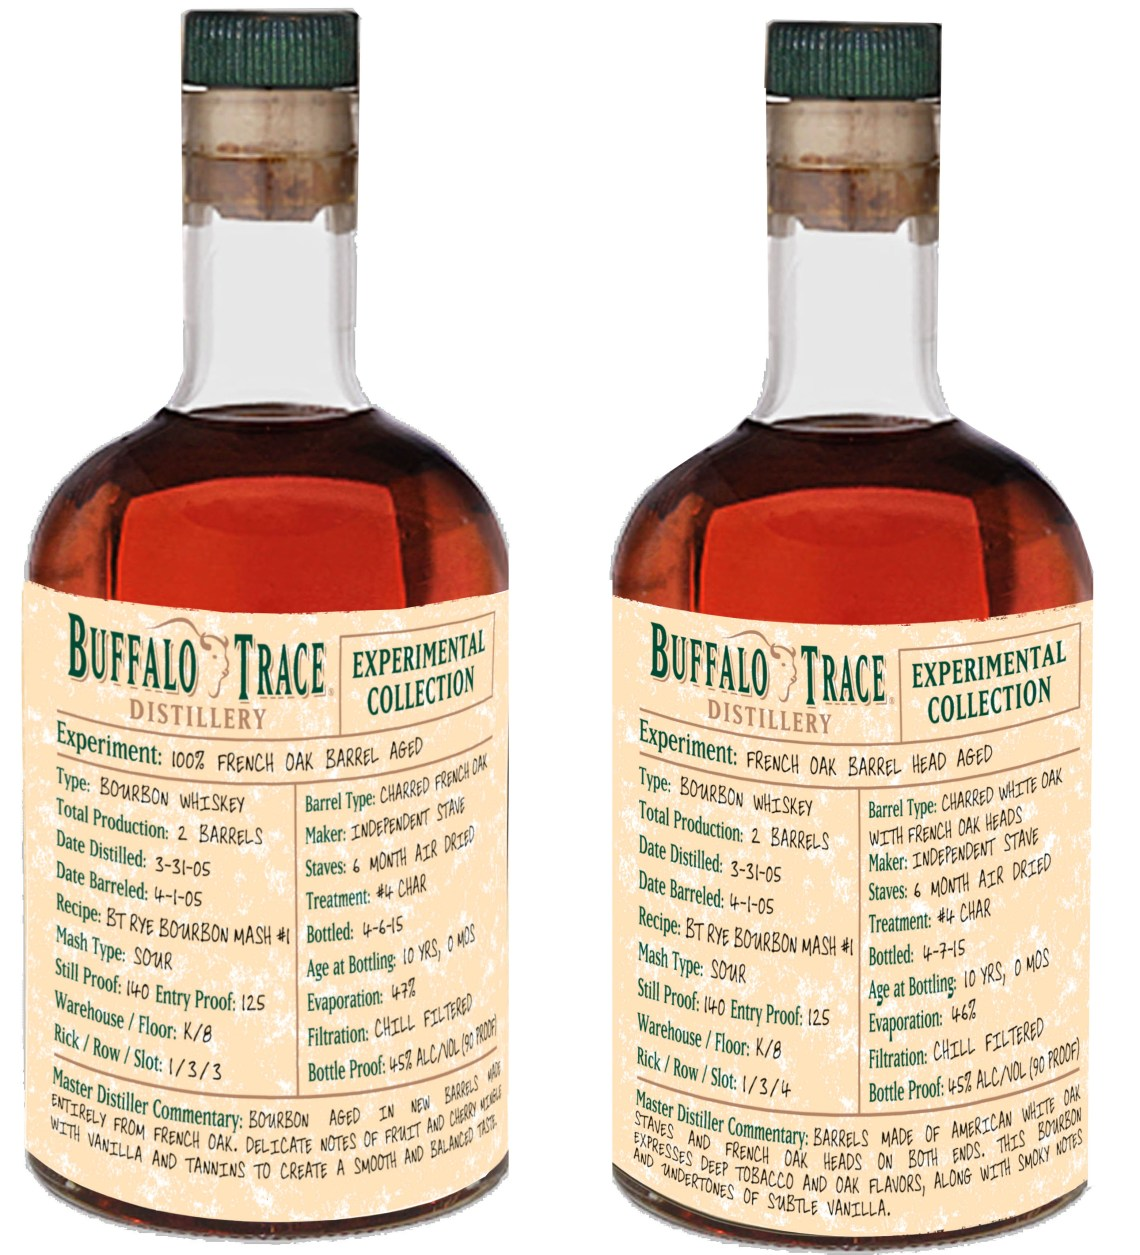 Buffalo Trace Experimental Collection 10 Year Old100% French Oak Barrel Aged Bourbon